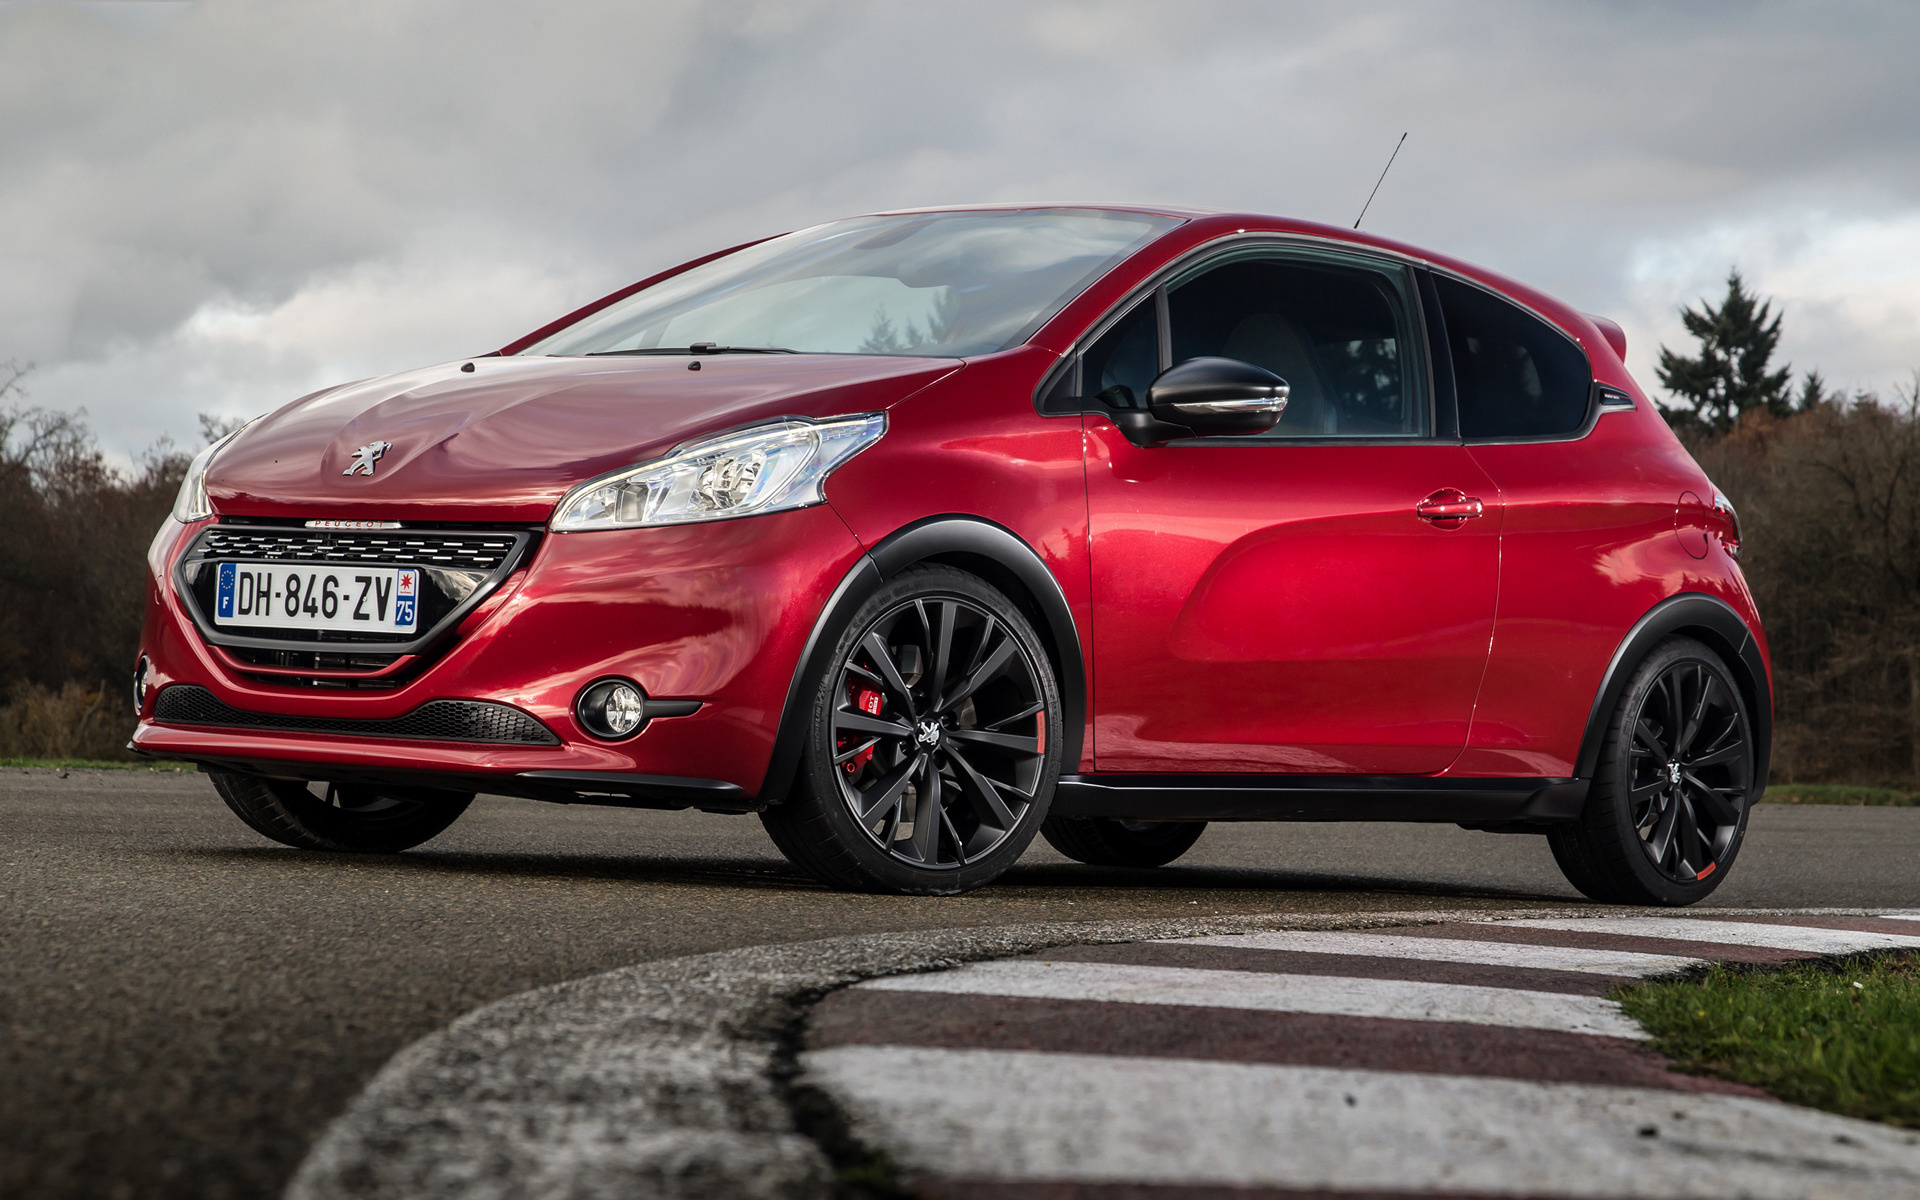 Jeep C Suv >> 2014 Peugeot 208 GTi 30th Anniversary - Wallpapers and HD ...